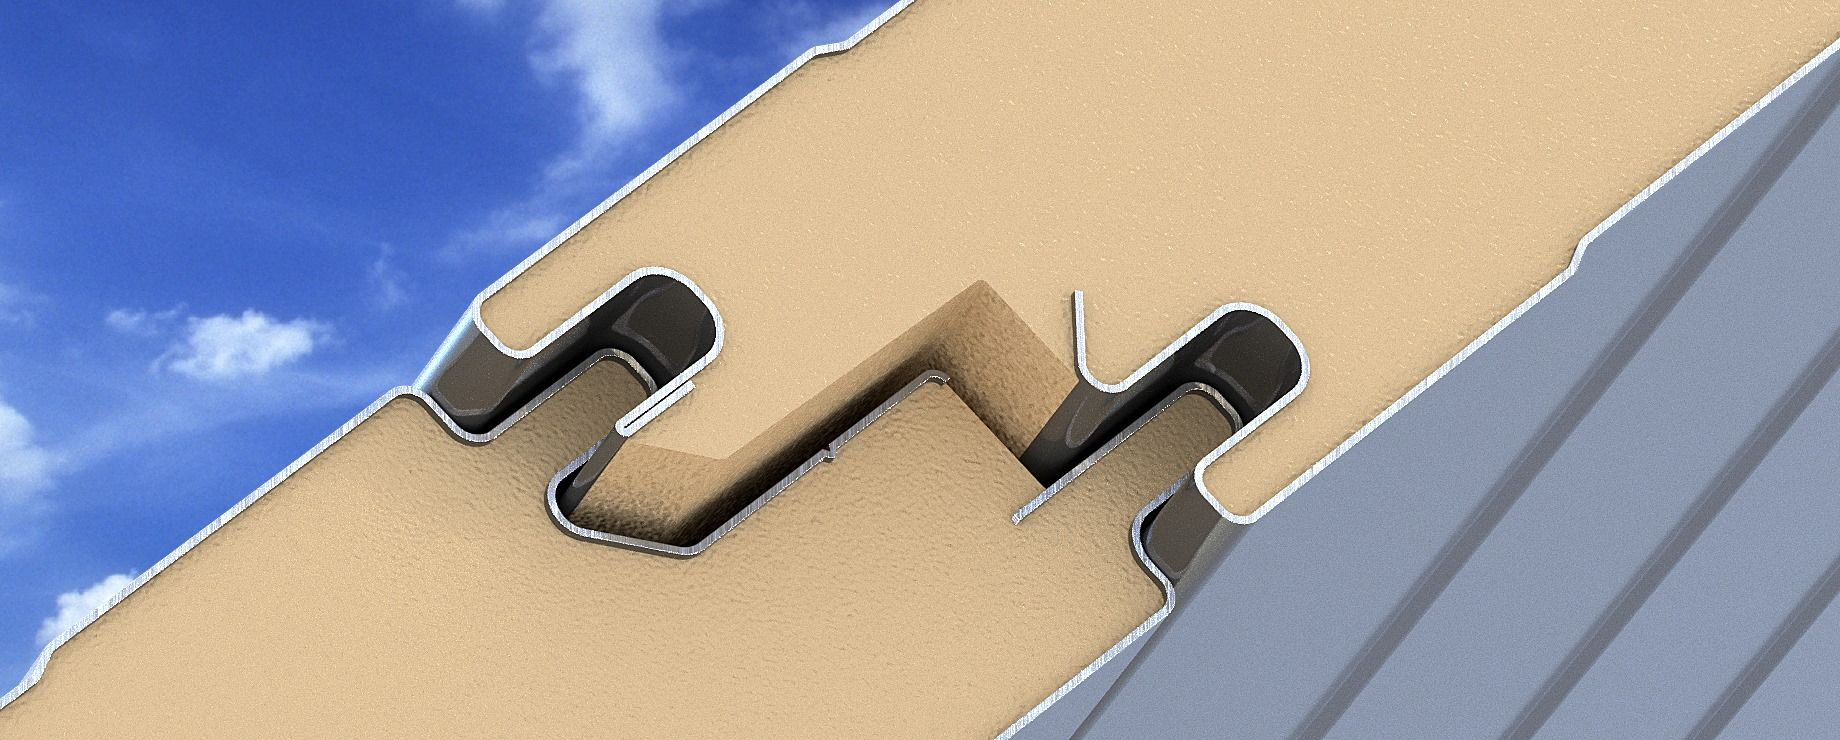 Tongue And Groove Joint Of Awip Panels Ensure Integrity Of A Building S Thermal Envelope Insulated Panels Roof Panels Deck Systems